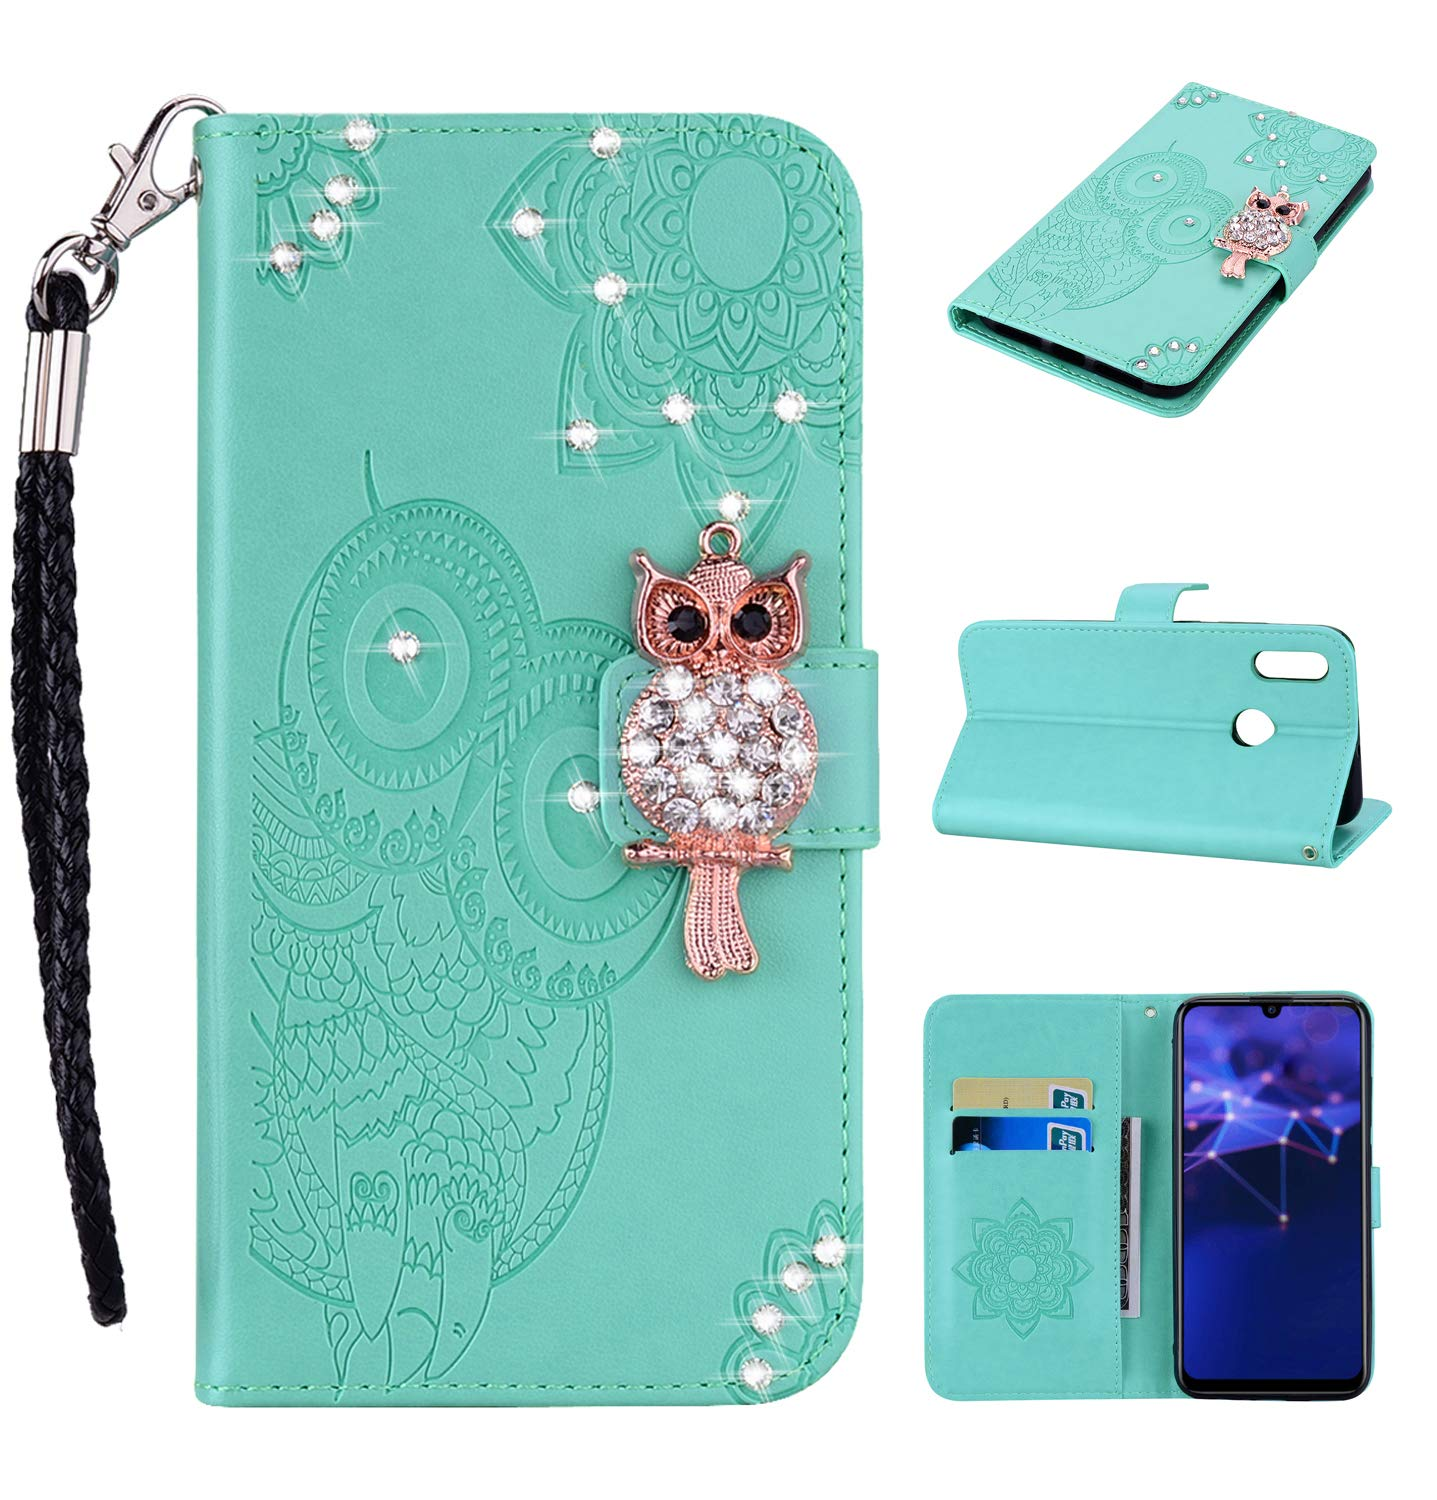 COZY HUT Huawei P Smart 2019 Case, Premium Slim PU Leather Flip Wallet [Diamond Owl] [Magnetic Closure] [Card Slots] Stand Function Cover Case for Huawei P Smart 2019 - Green diamond owl